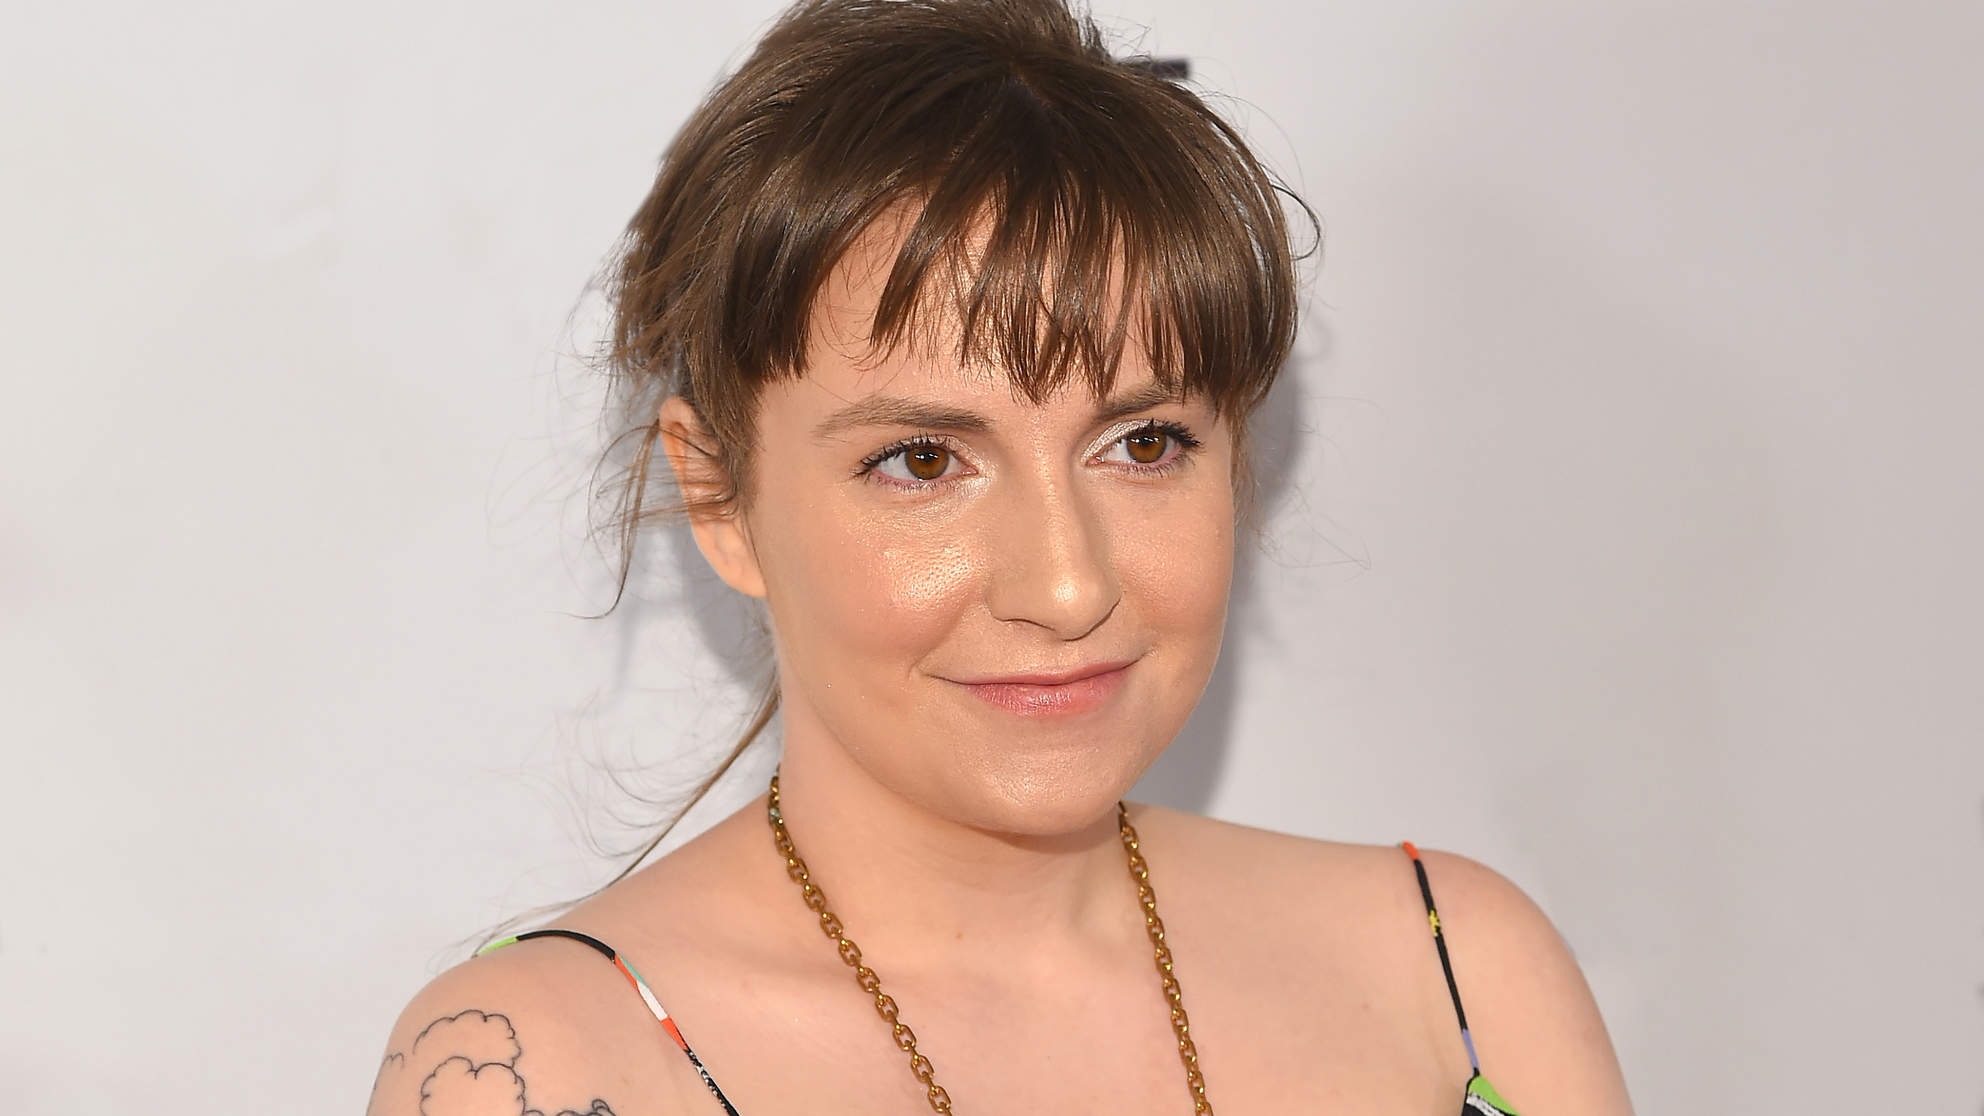 Lena Dunham on the Moment She Felt Jack Antonoff 'Slip Away' as She Prepared for Hysterectomy